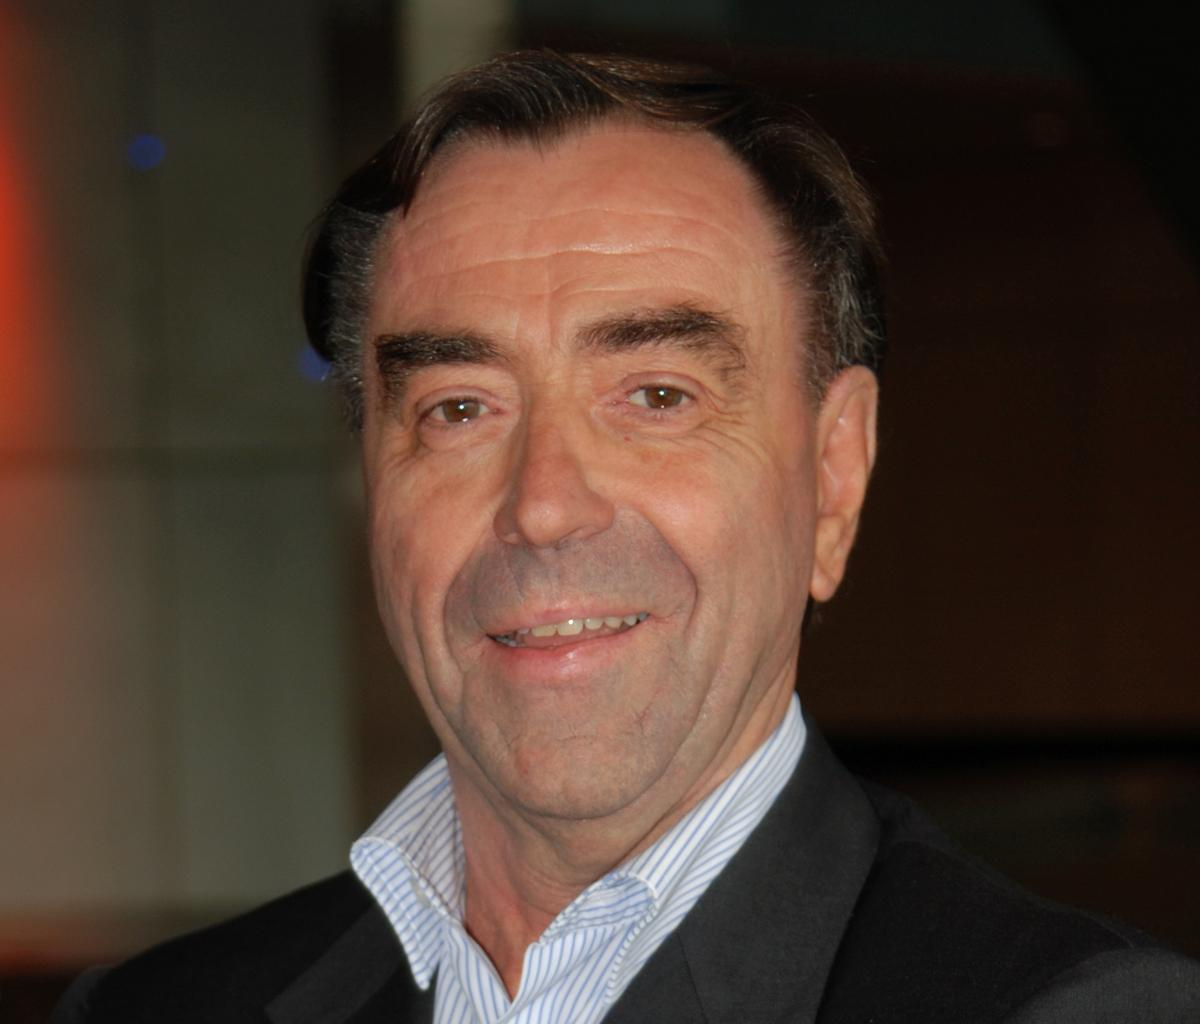 Herman Rutgers co-authored the European Health and Fitness Market Report 2017